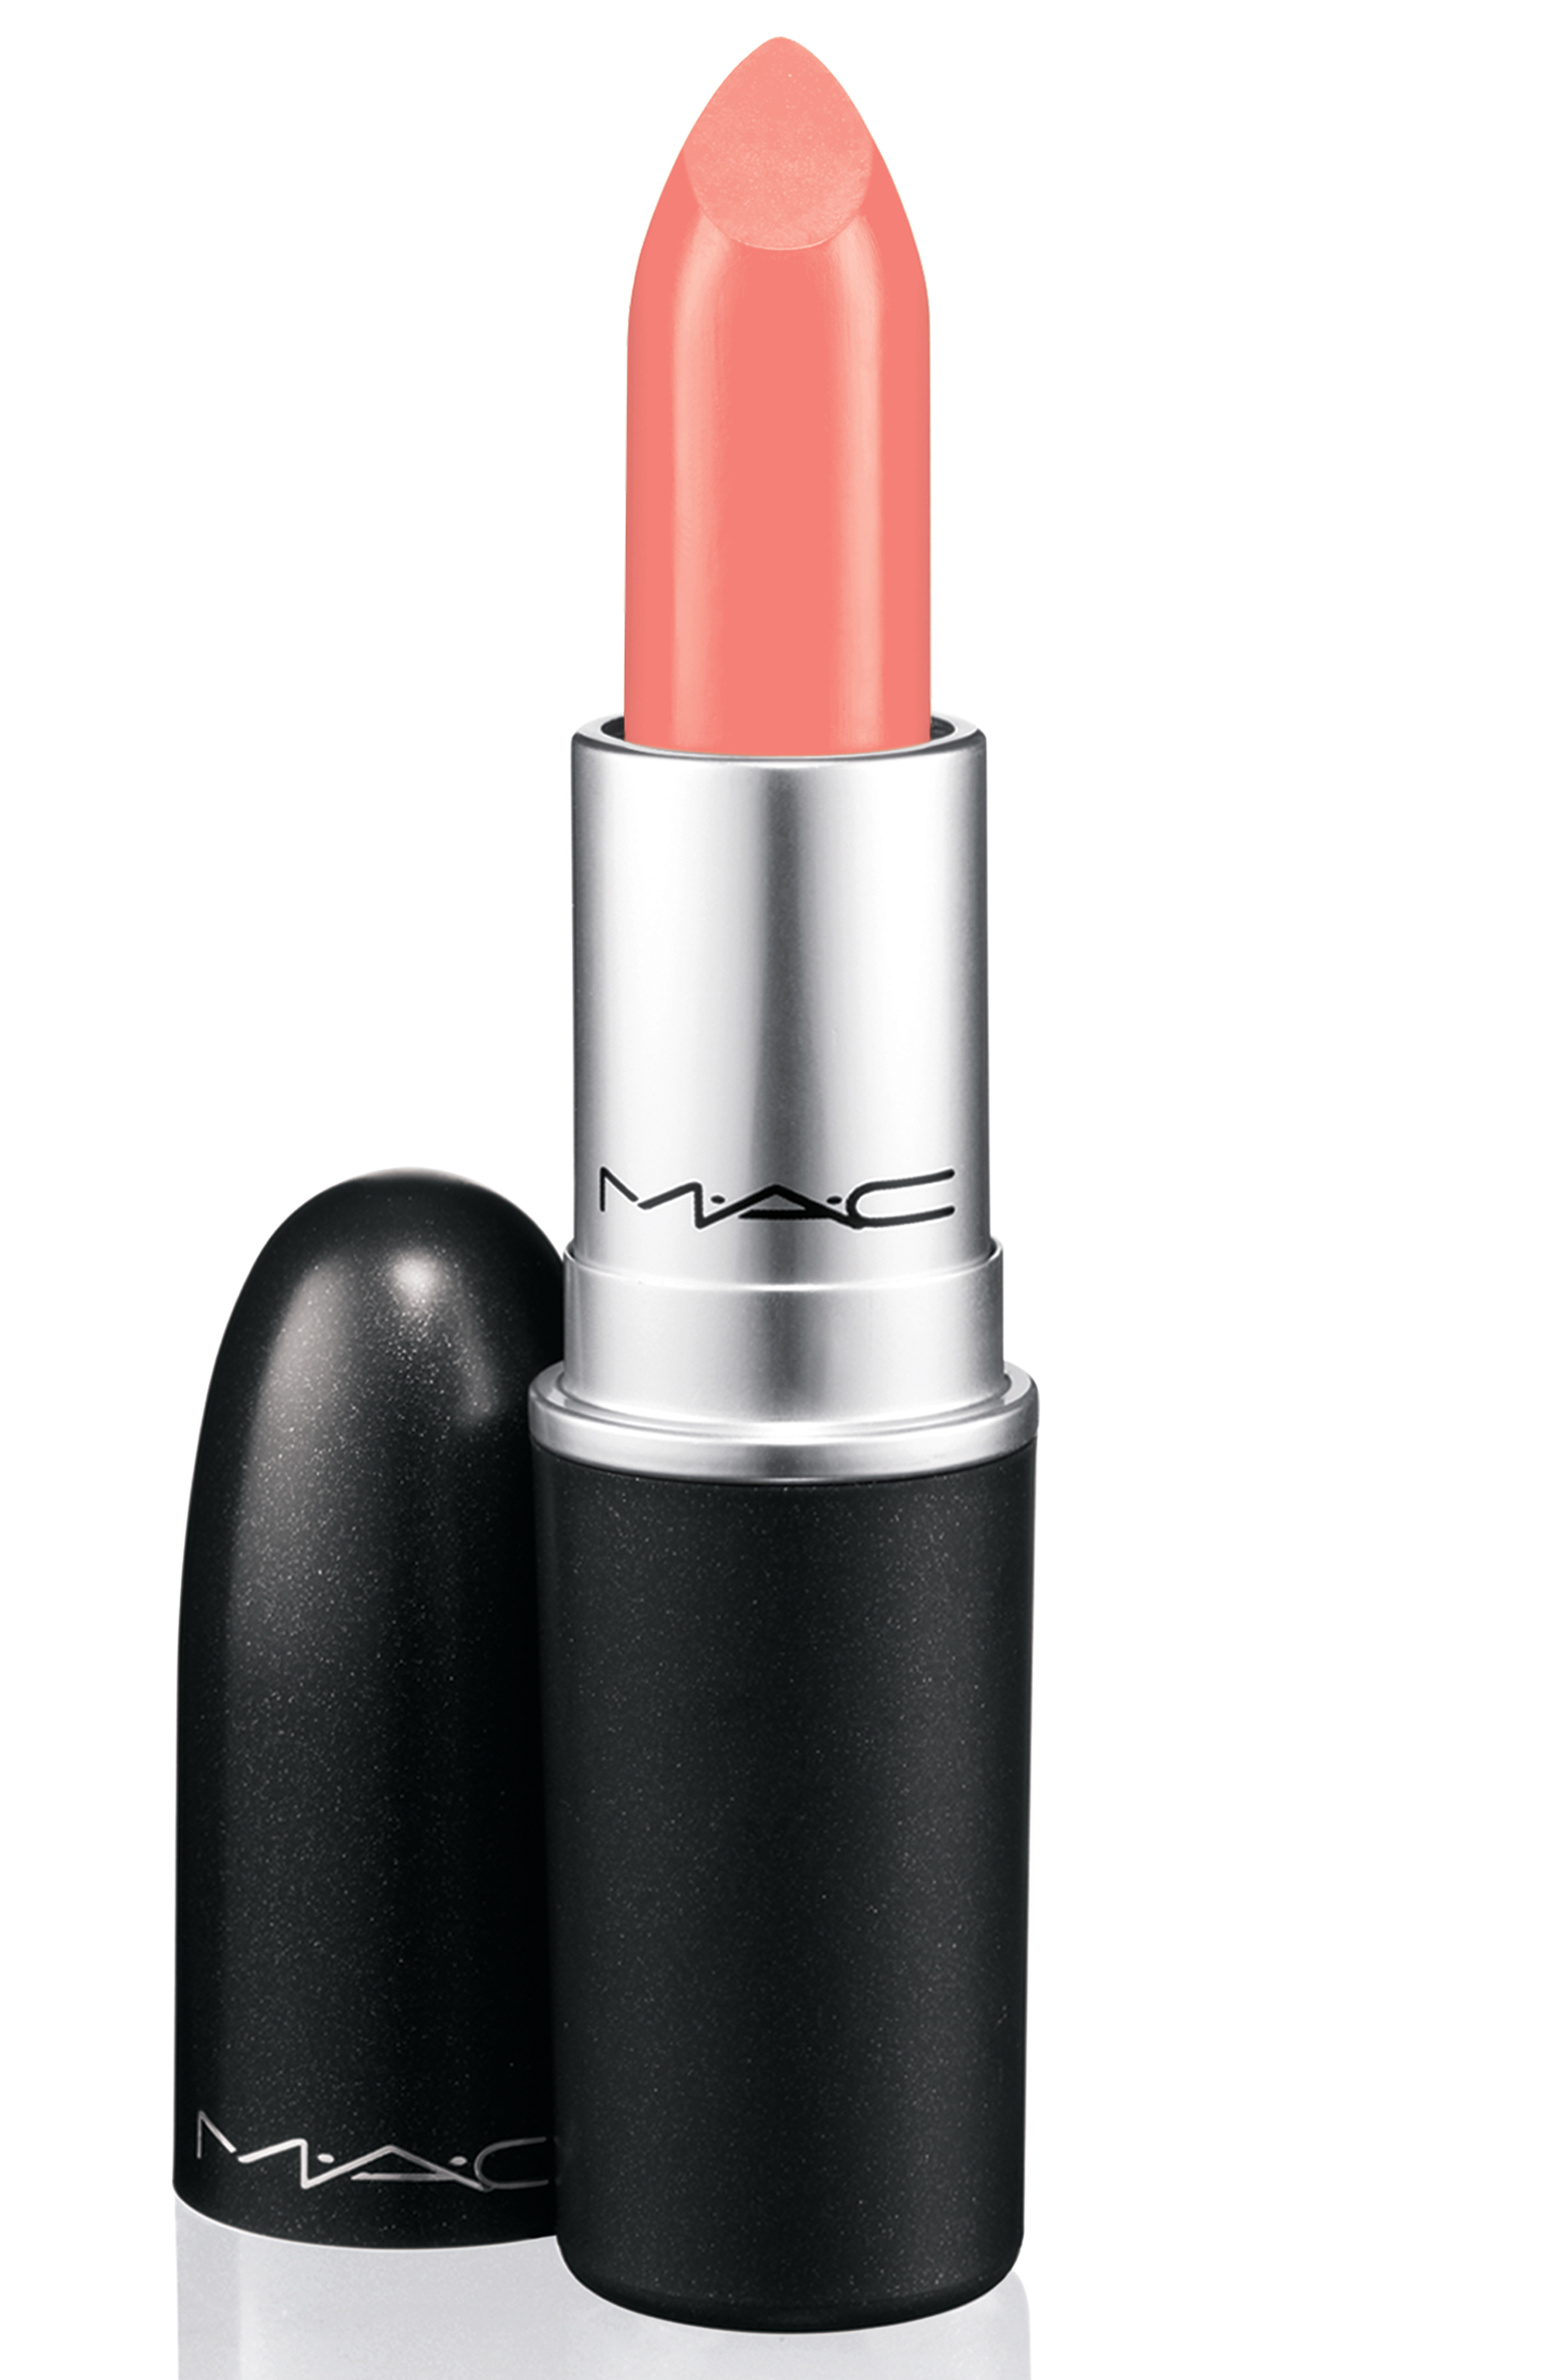 ... flower lipstick displaying 19 images for mac sushi flower lipstick